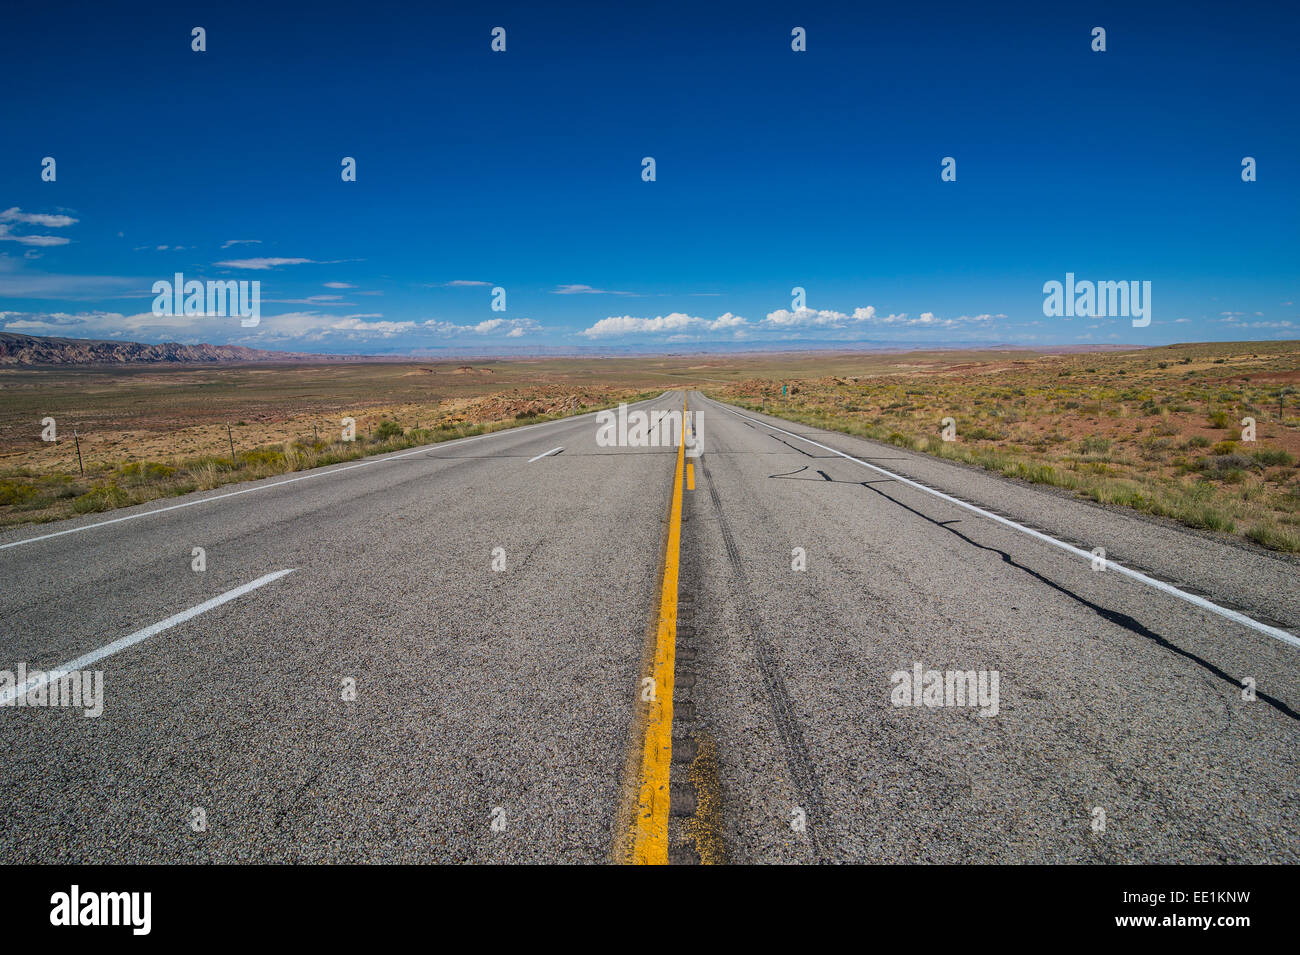 Road leading through the Grand Staircase Escalante National Monument, Utah, United States of America, North America Stock Photo